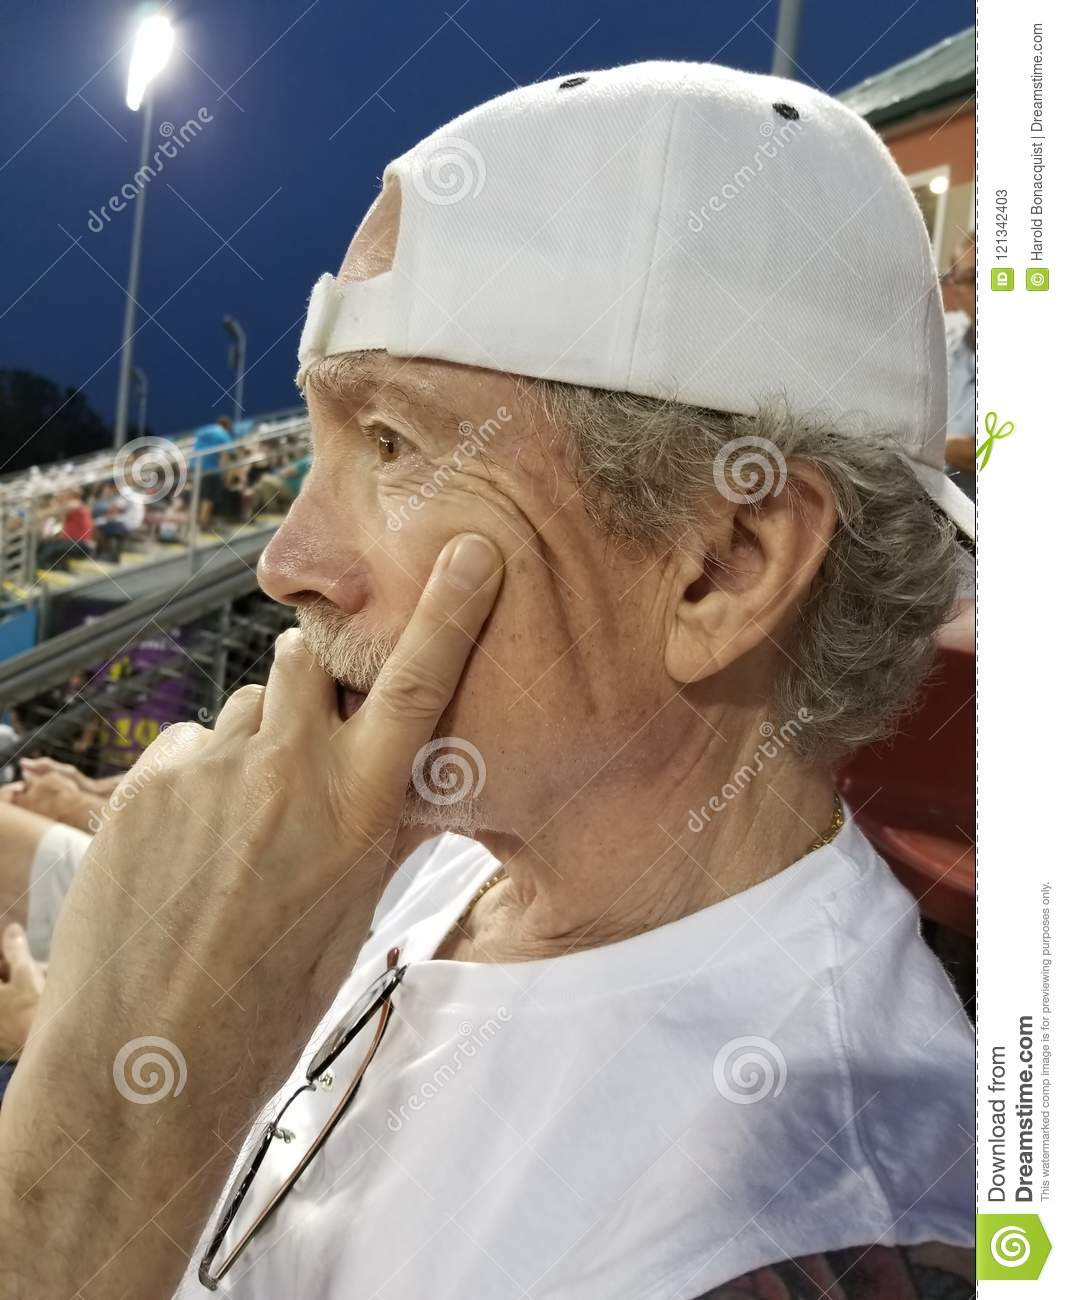 Older man with goatee and intent expression wearing white back b